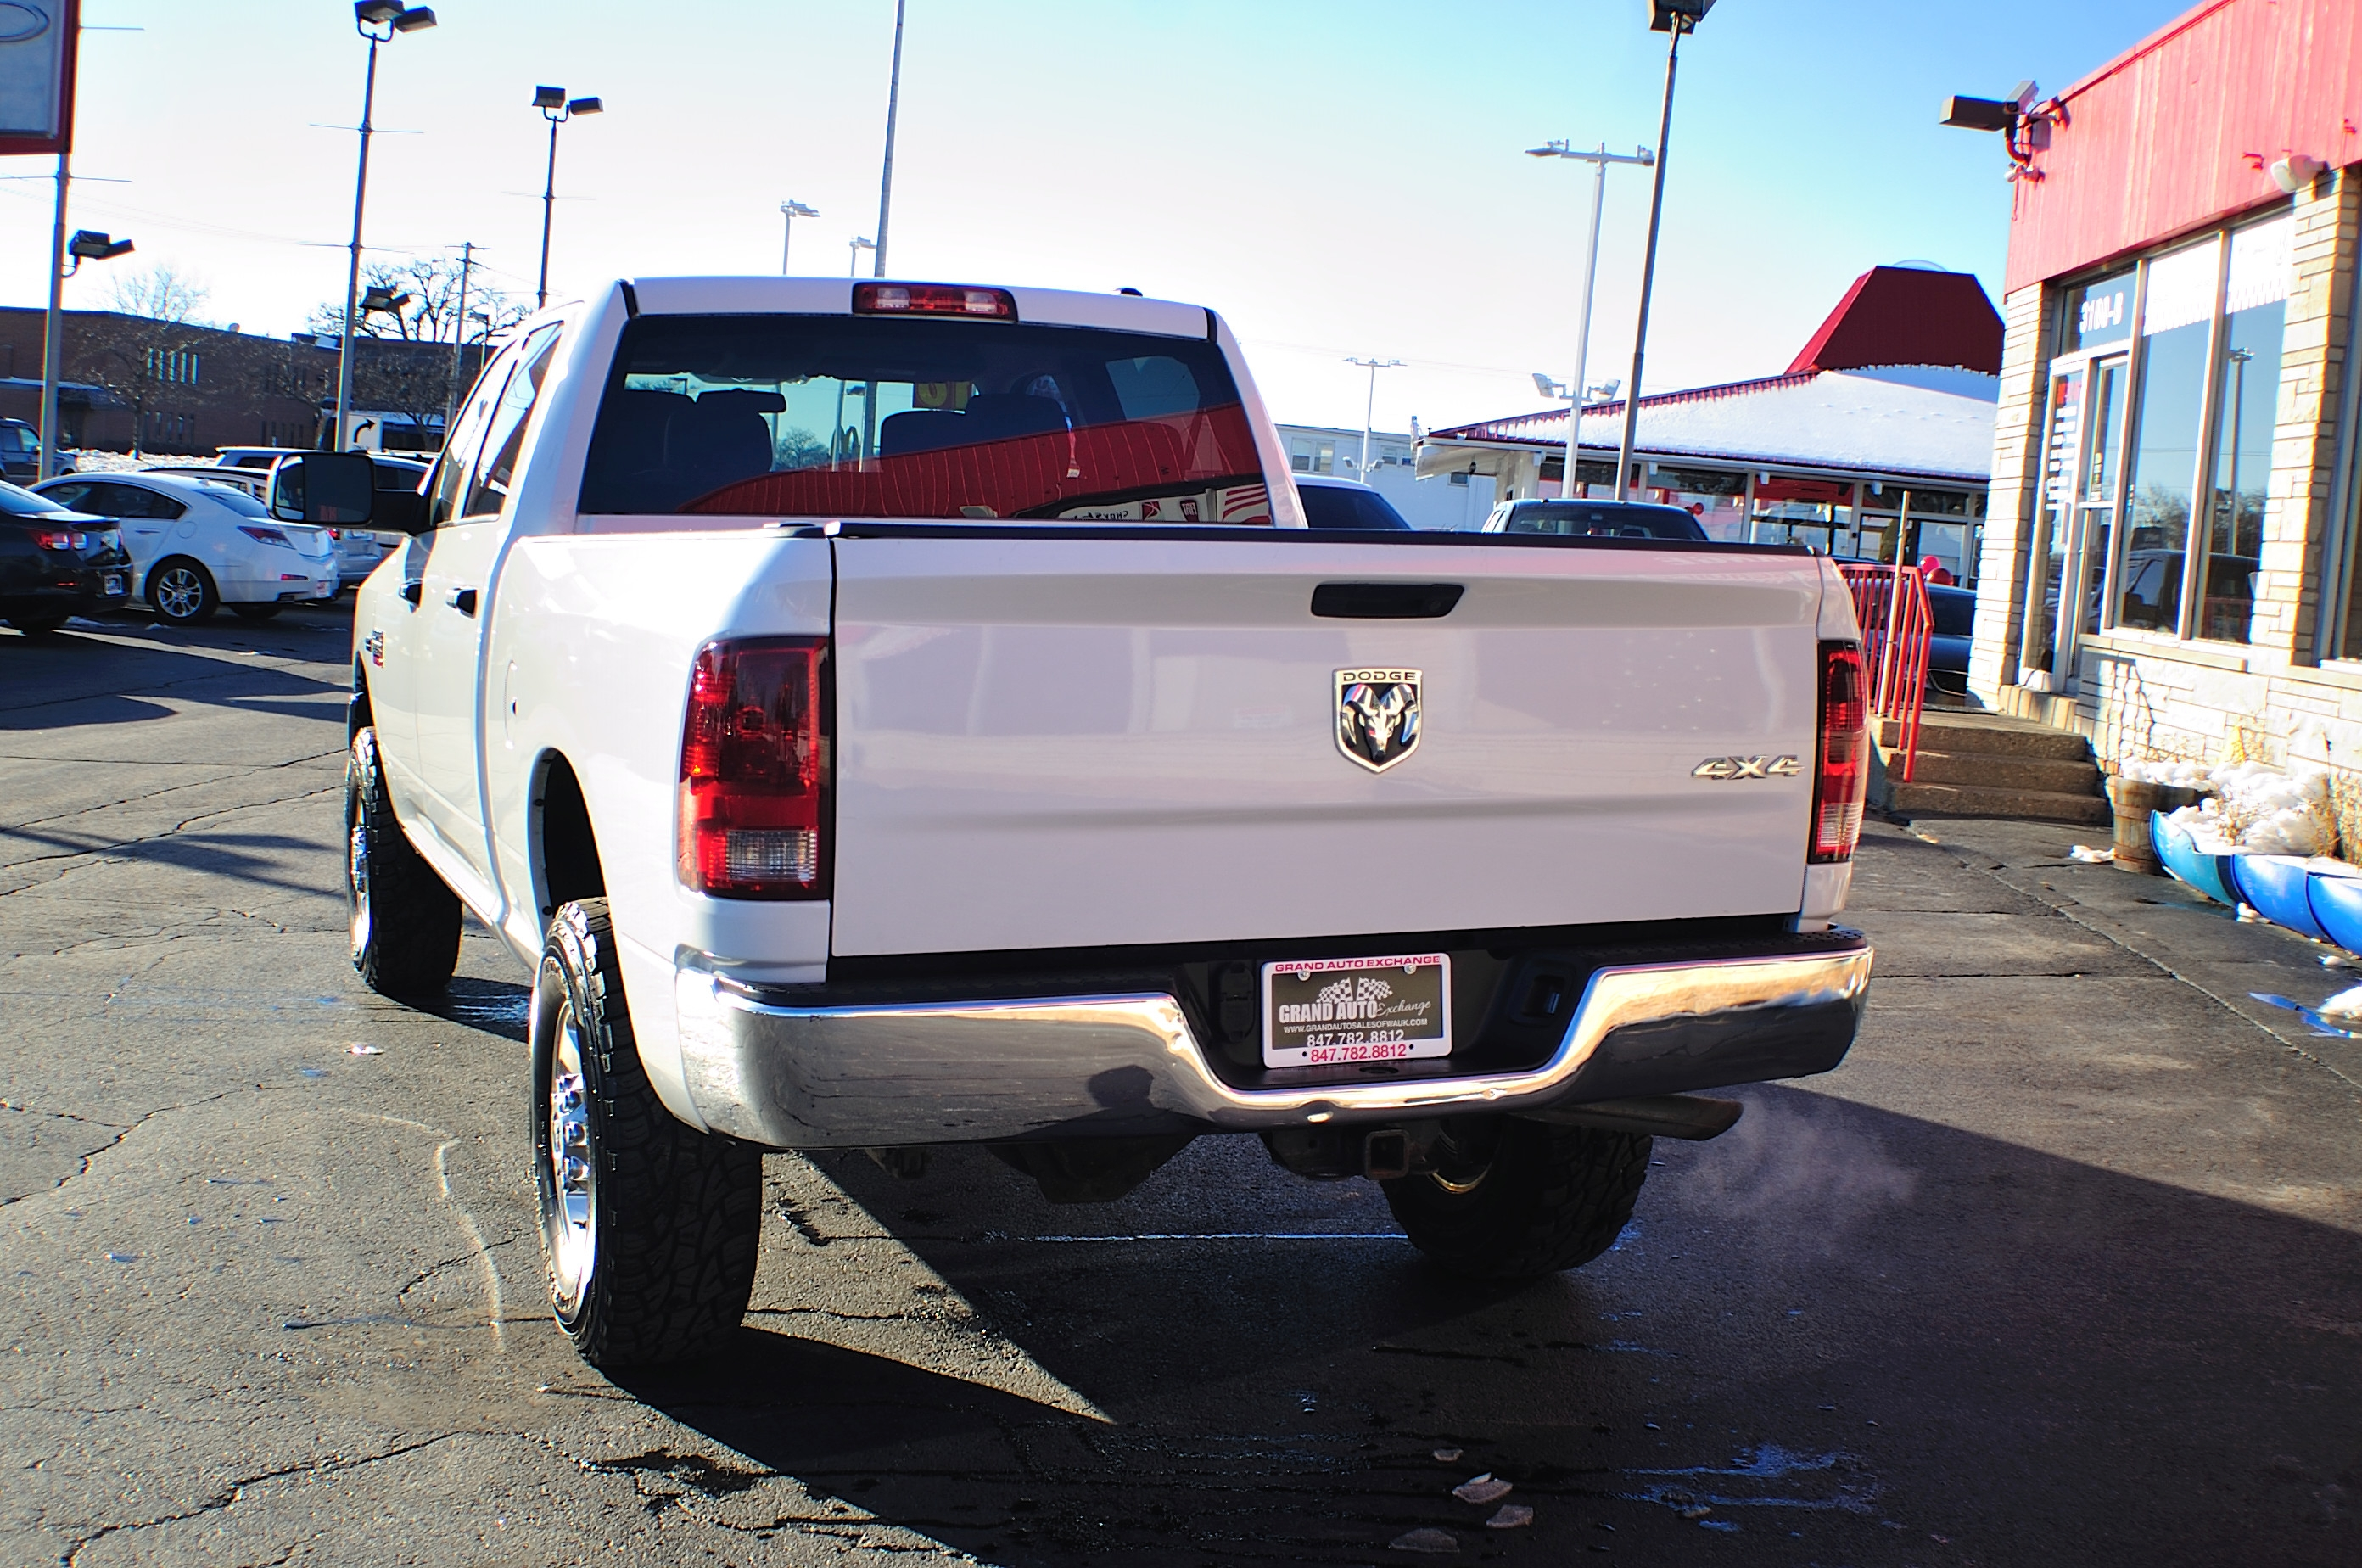 2010 Dodge Ram 2500 HD White Used 4x4 Truck Sale Buffalo Grove Deerfield Fox Lake